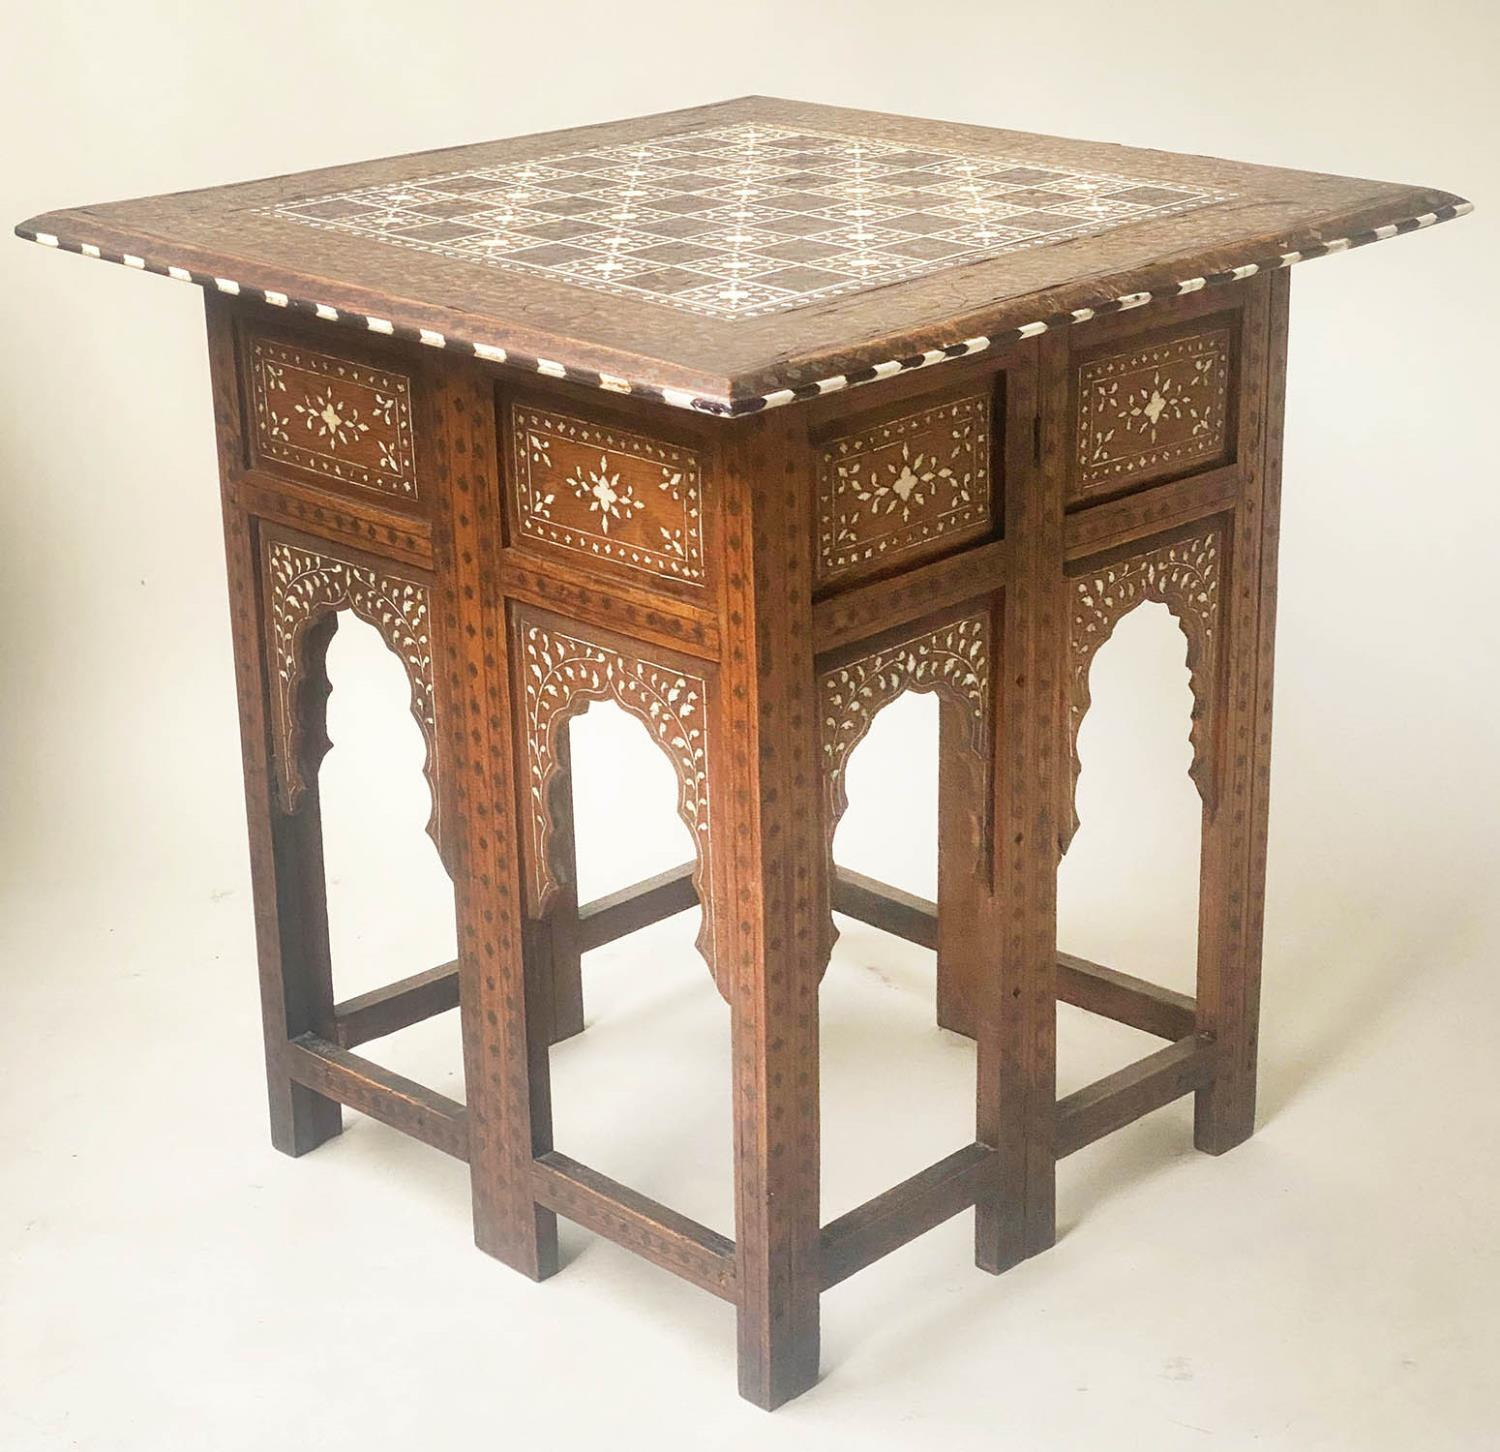 LAMP TABLE, Early 20th century Syrian square hardwood and ebony inlaid with conforming arched - Image 4 of 5